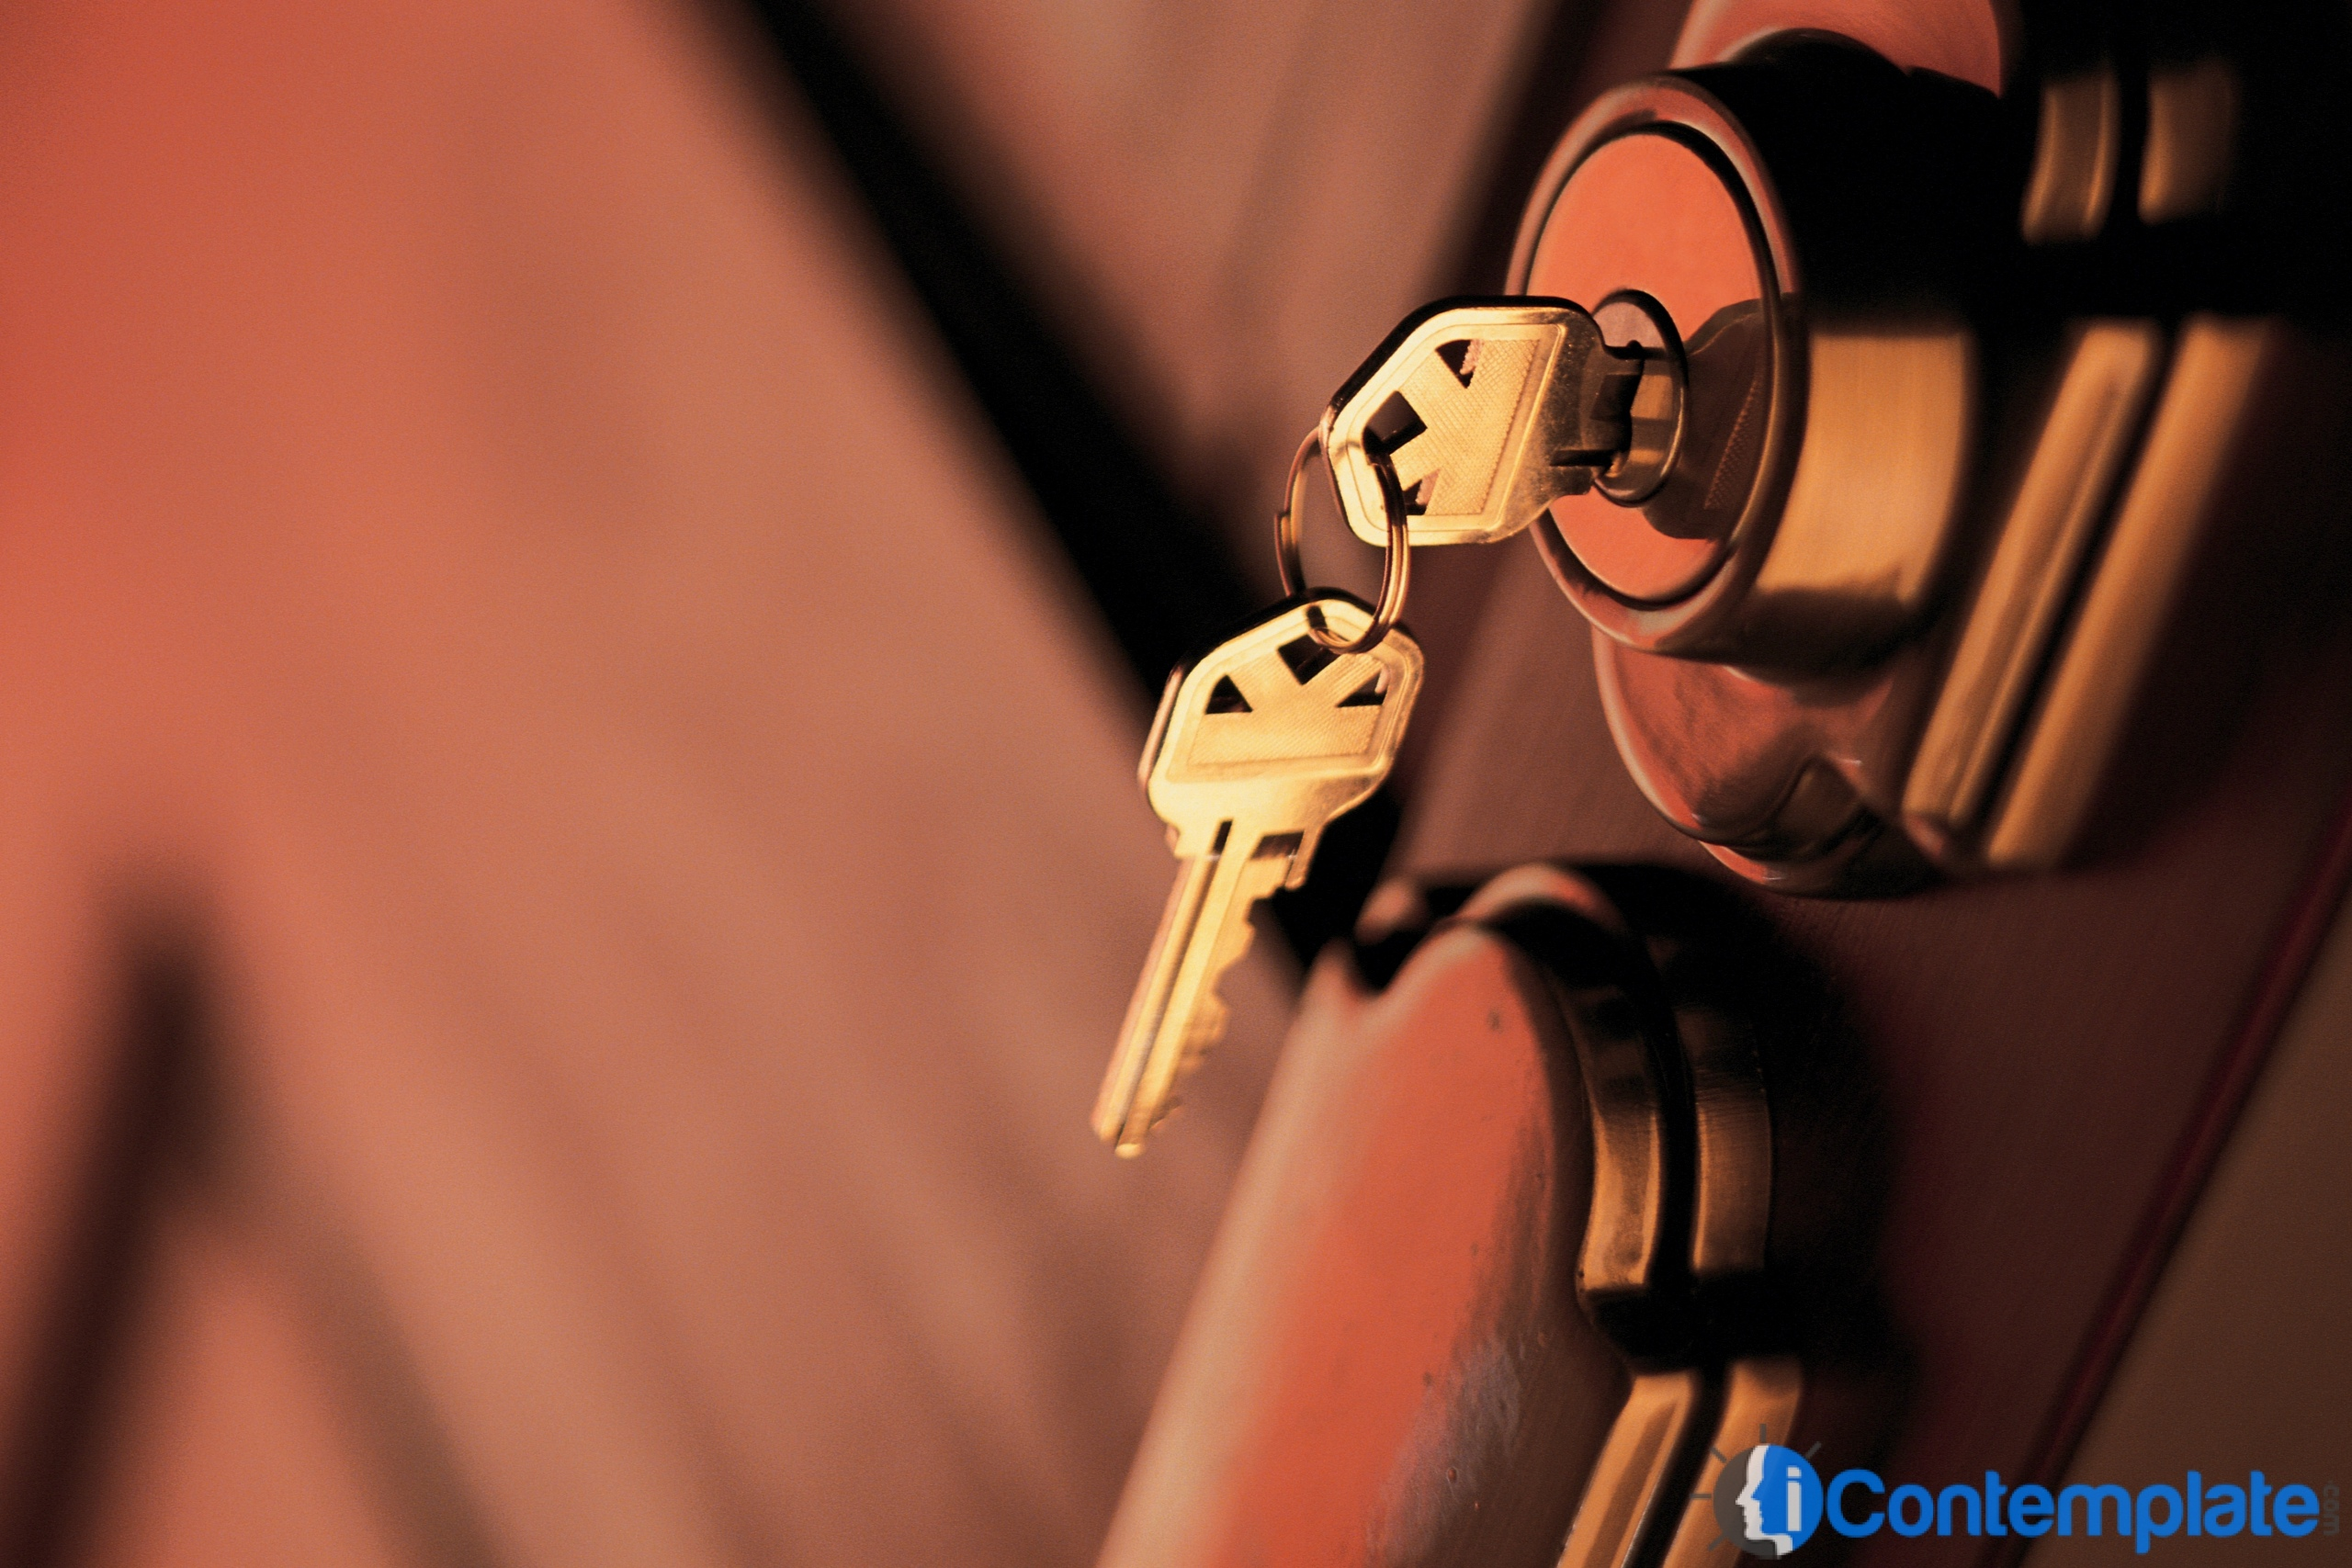 Preventative Tips For Keys and Who To Call In An Emergency For Help